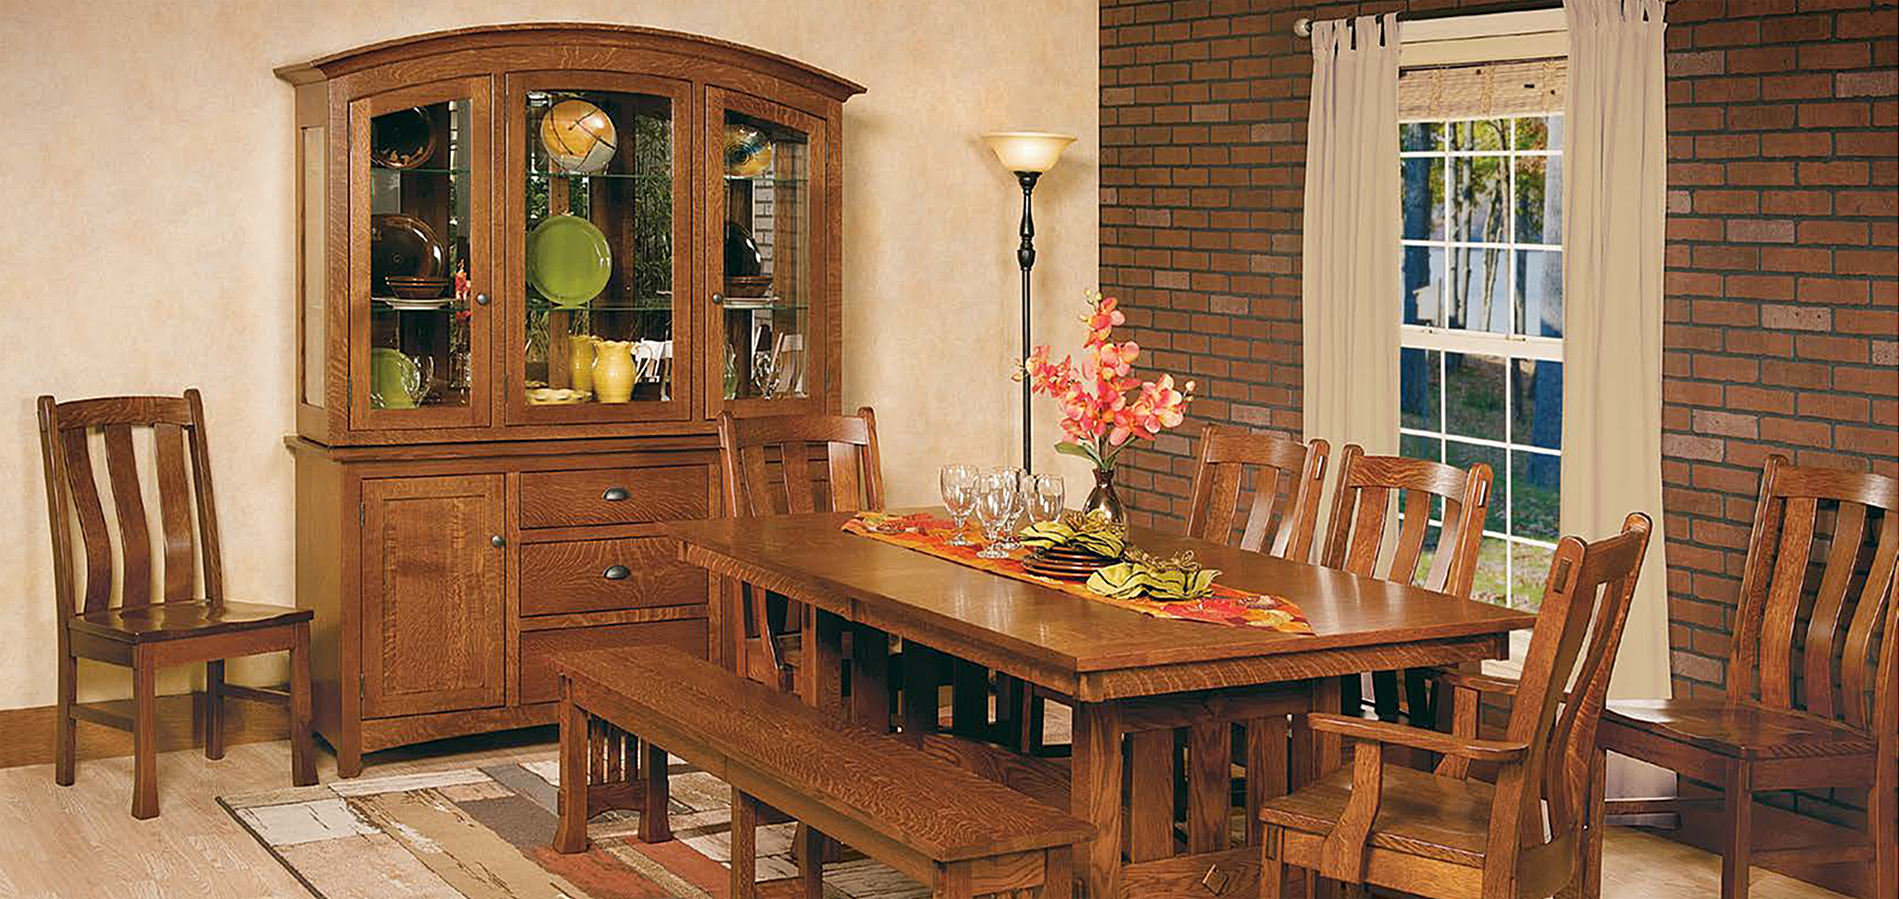 2017-west-point-woodworking-olde-centry-421-copy.jpg